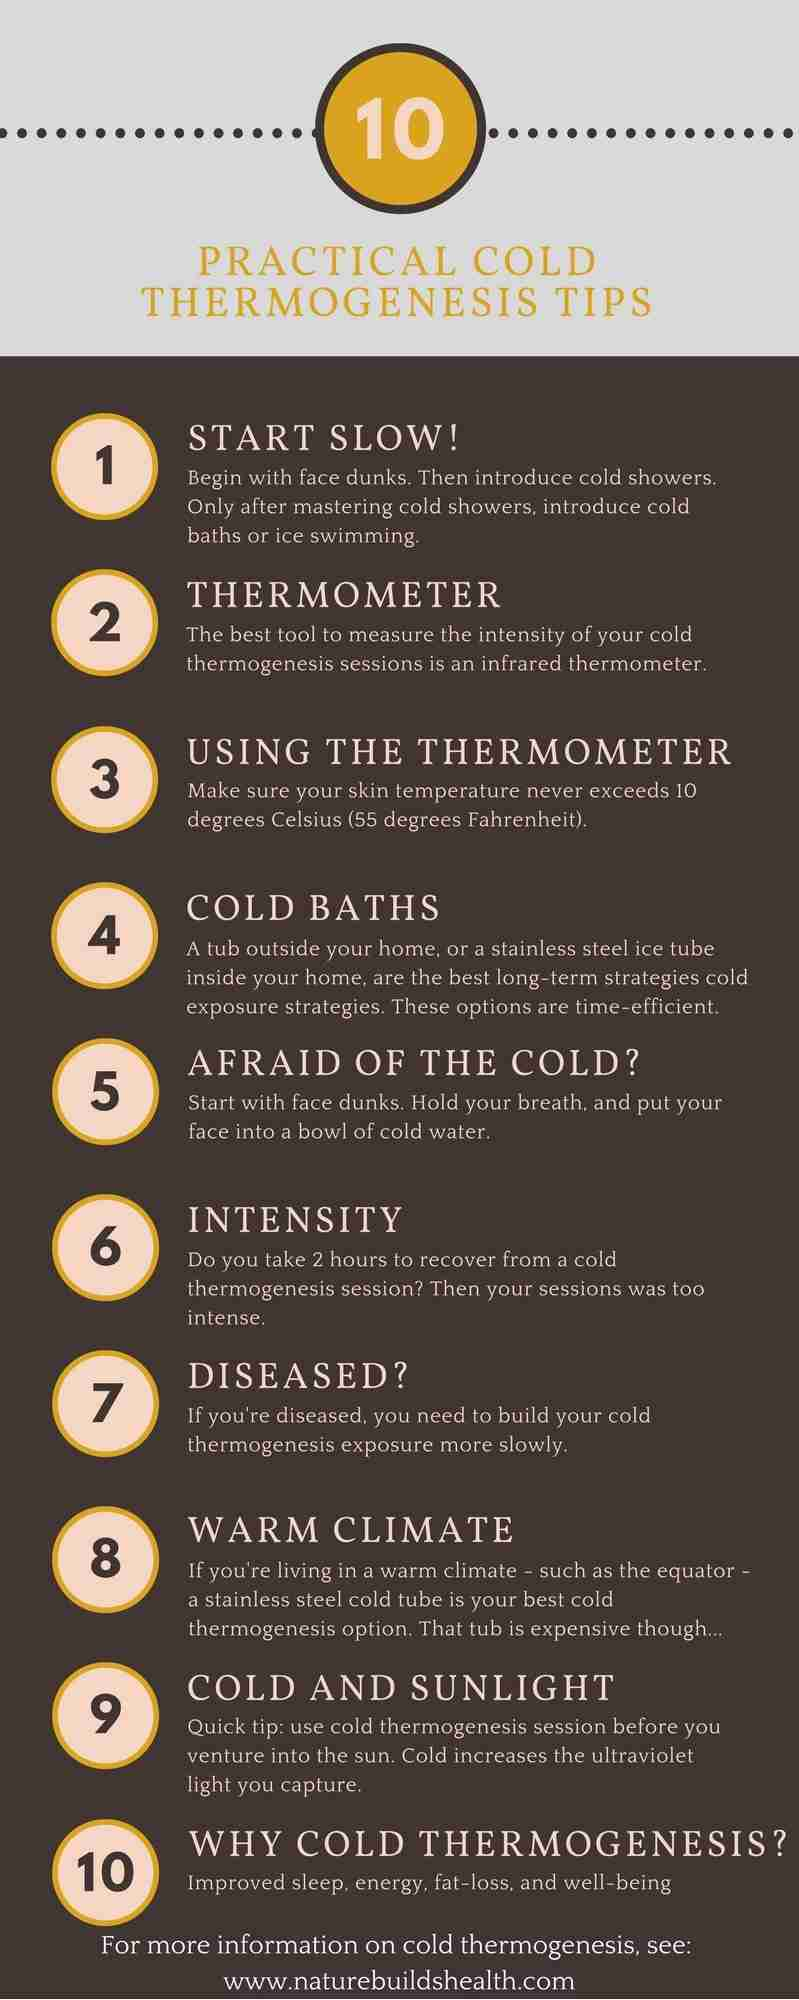 Cold Thermogenesis: Incredible Cold Shower And Ice Bath Benefits